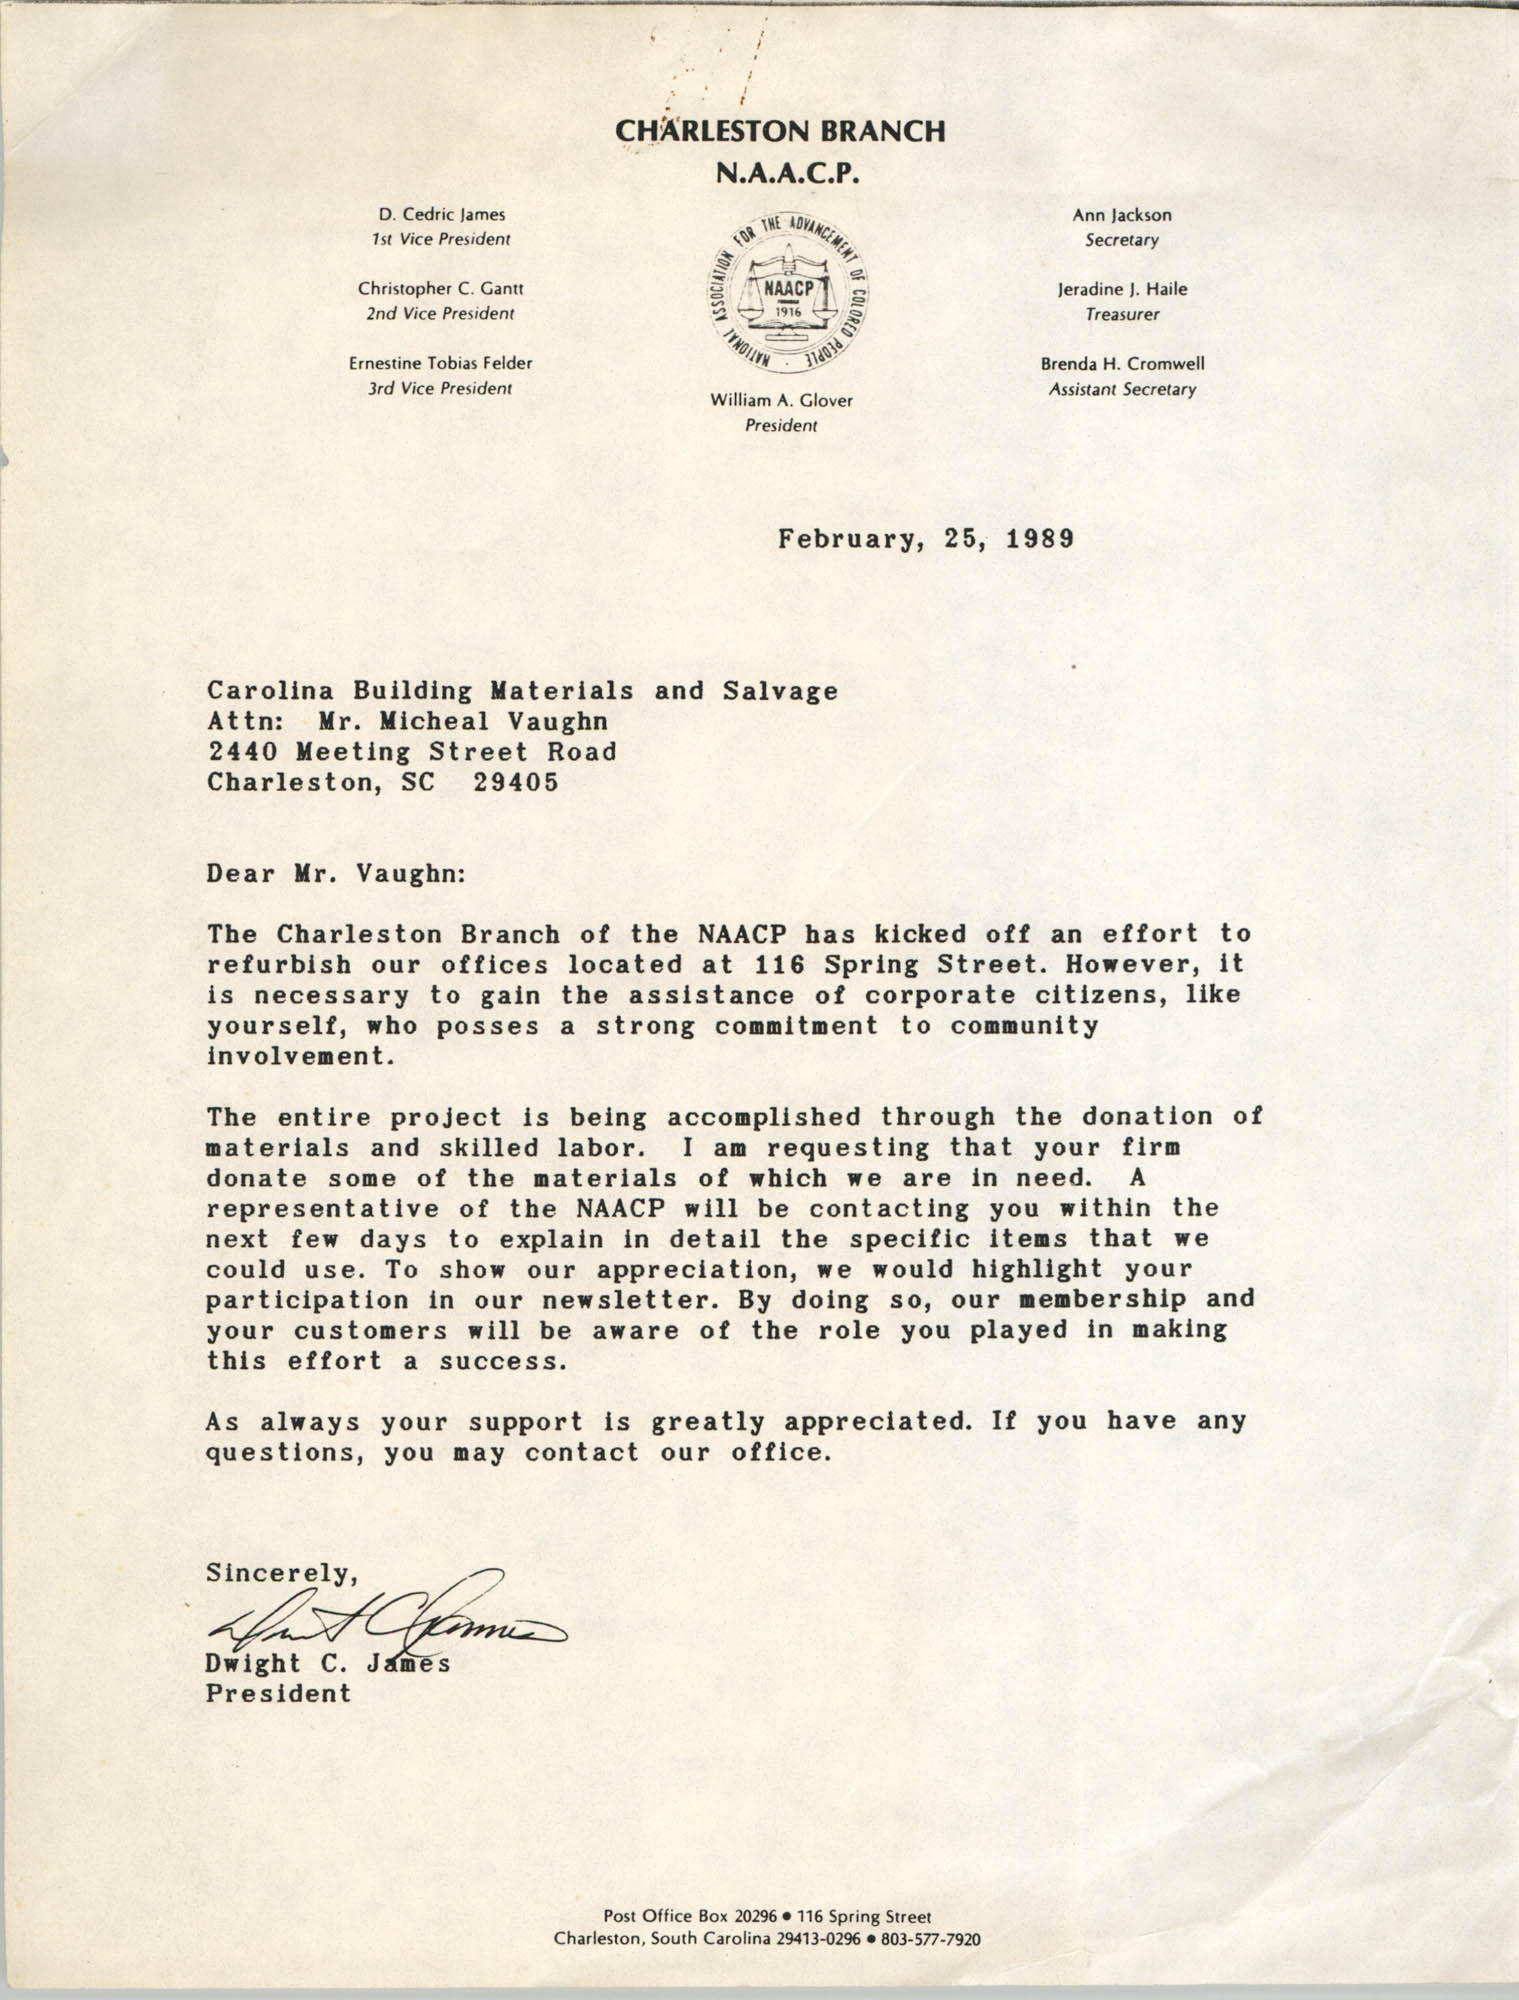 Letter from Dwight C. James to Carolina Building Materials and Salvage, February 25, 1989